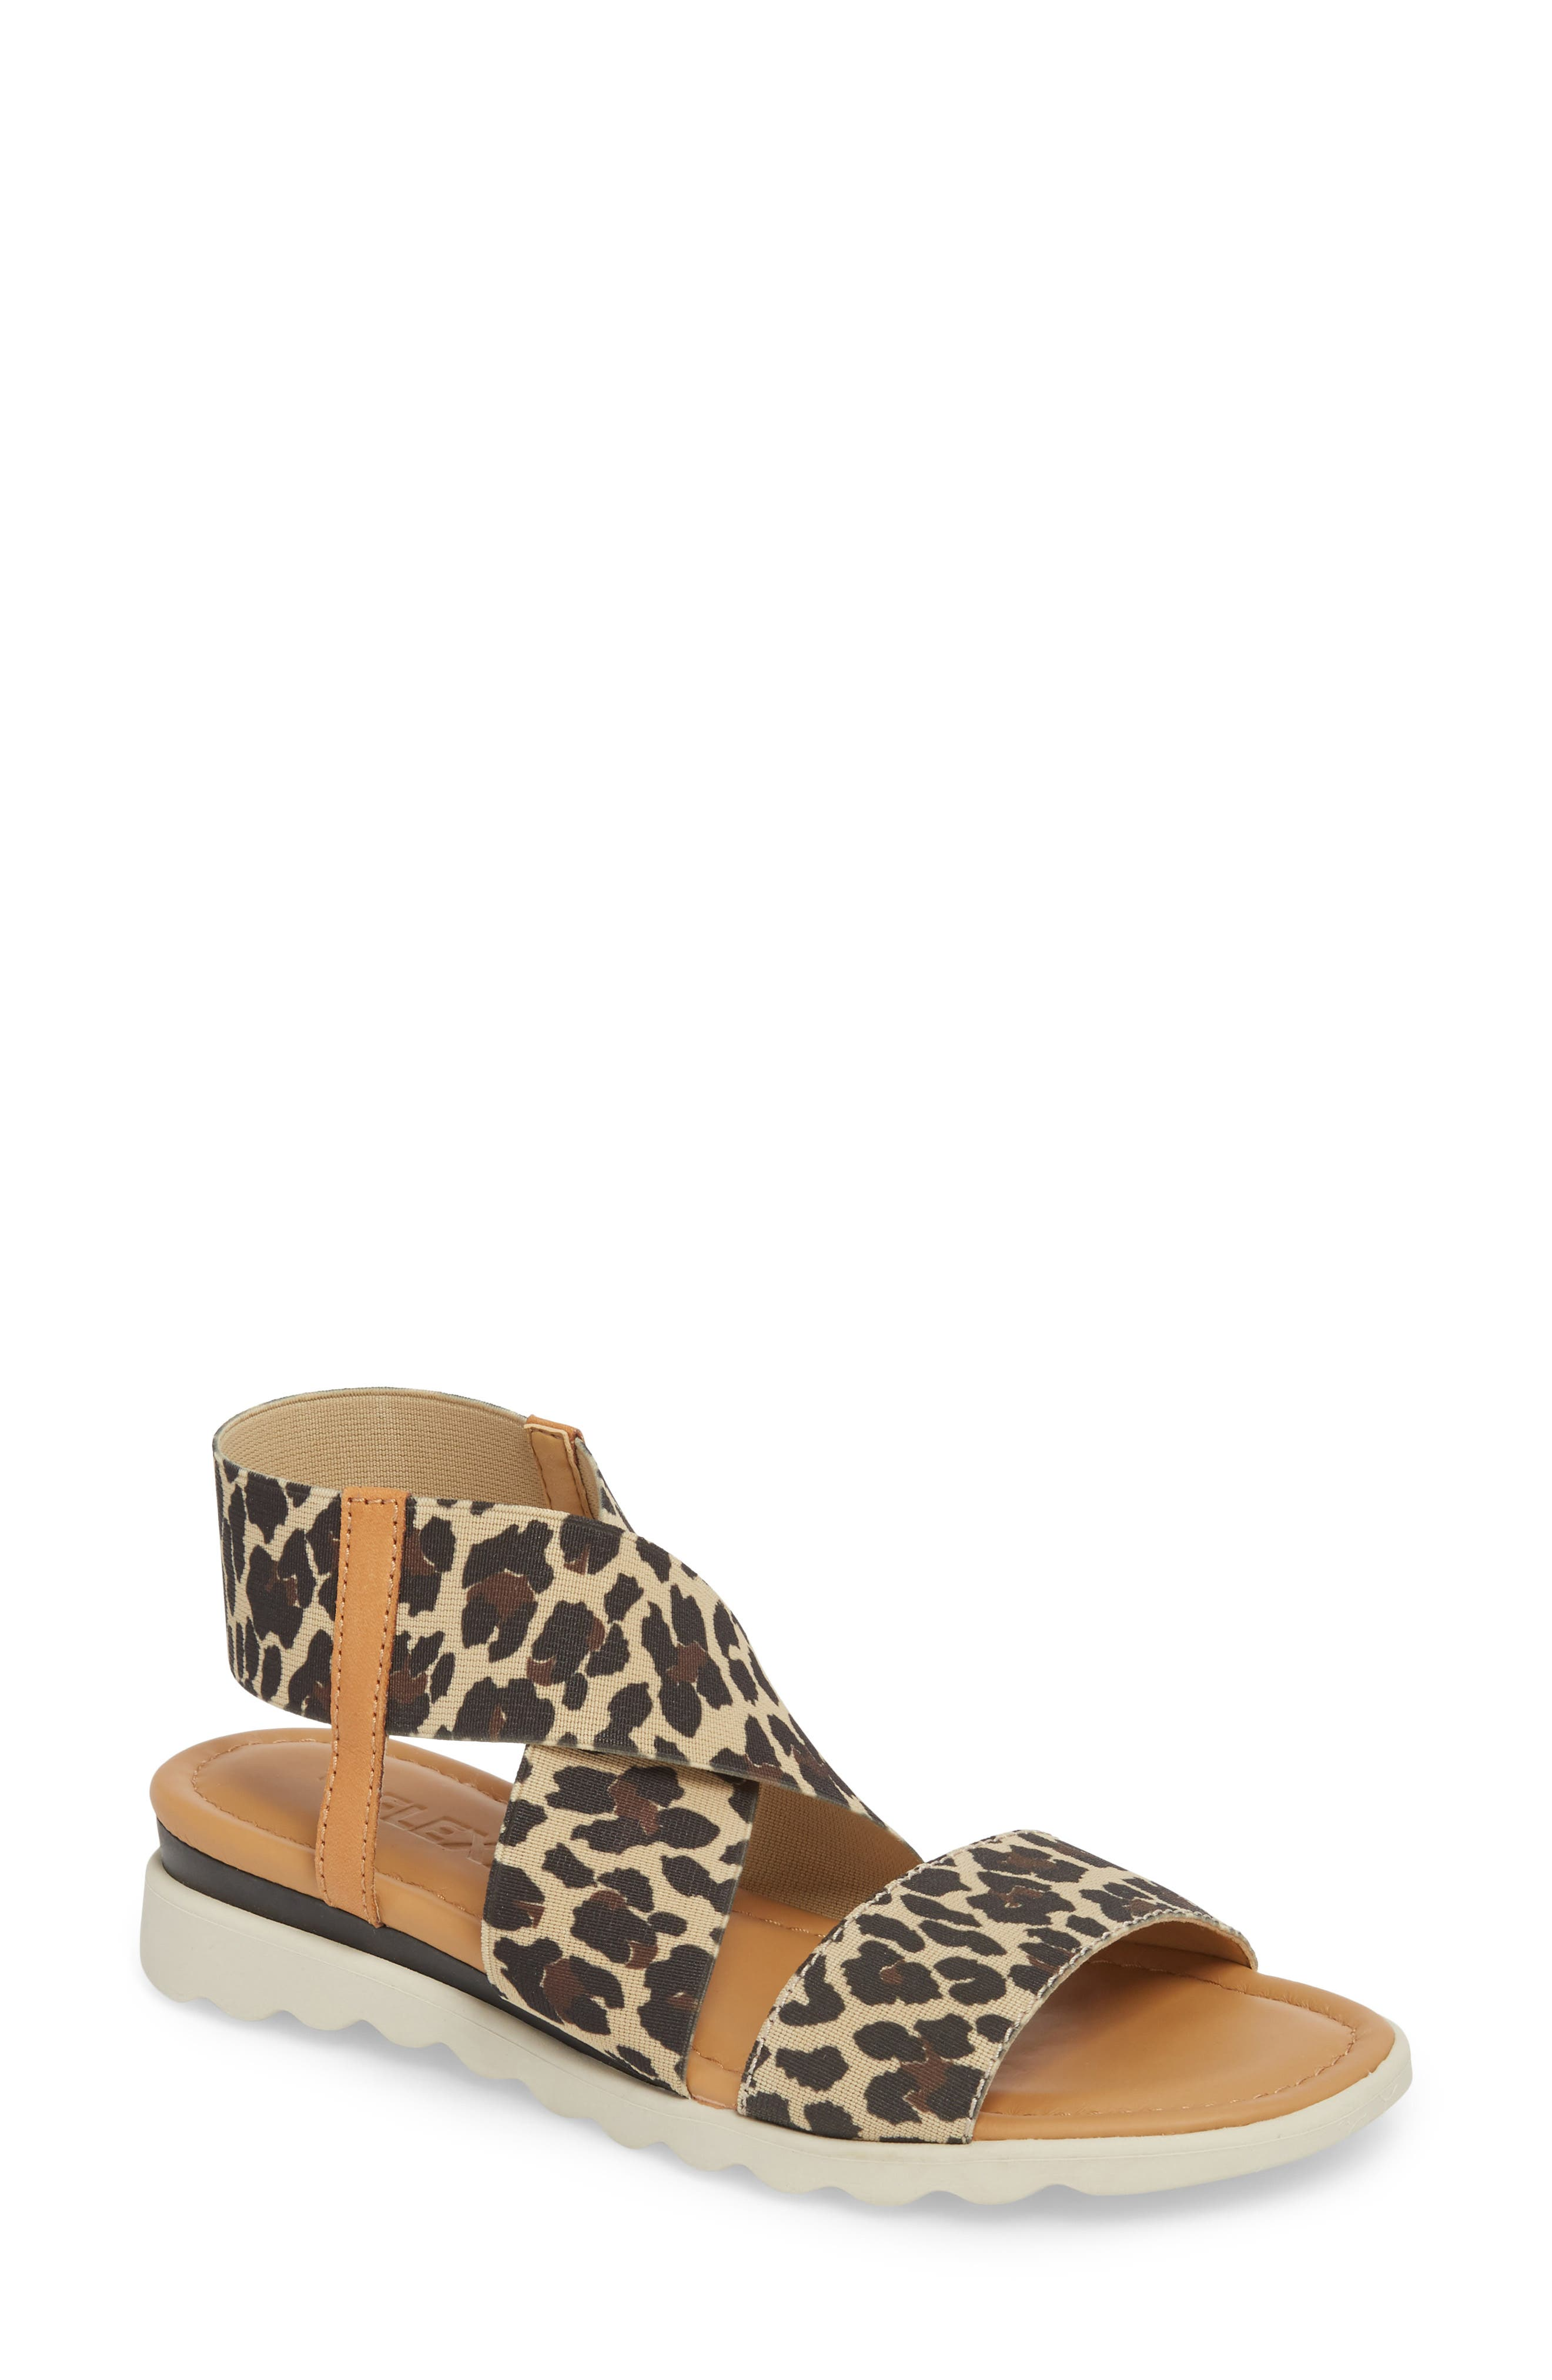 Extra Sandal,                         Main,                         color, DUNE LEOPARD FABRIC